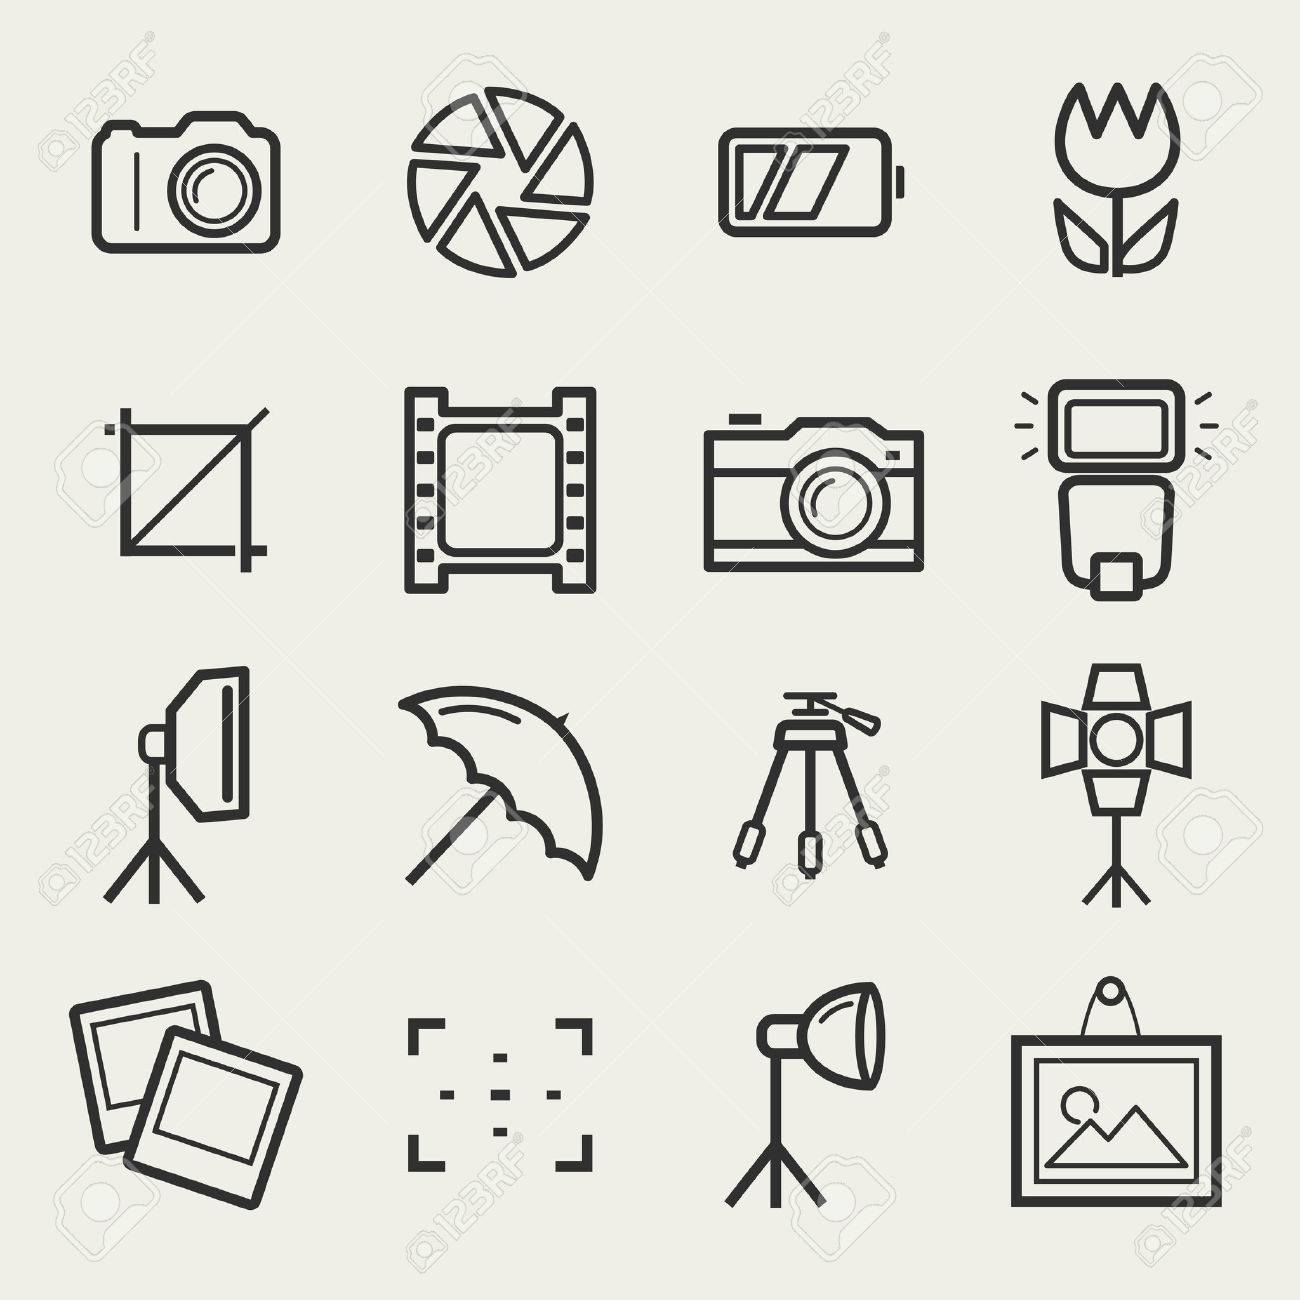 Photo icons. Set of 16 symbols for a photographic theme. Vector collection of outline elements isolated on white background. - 49905443